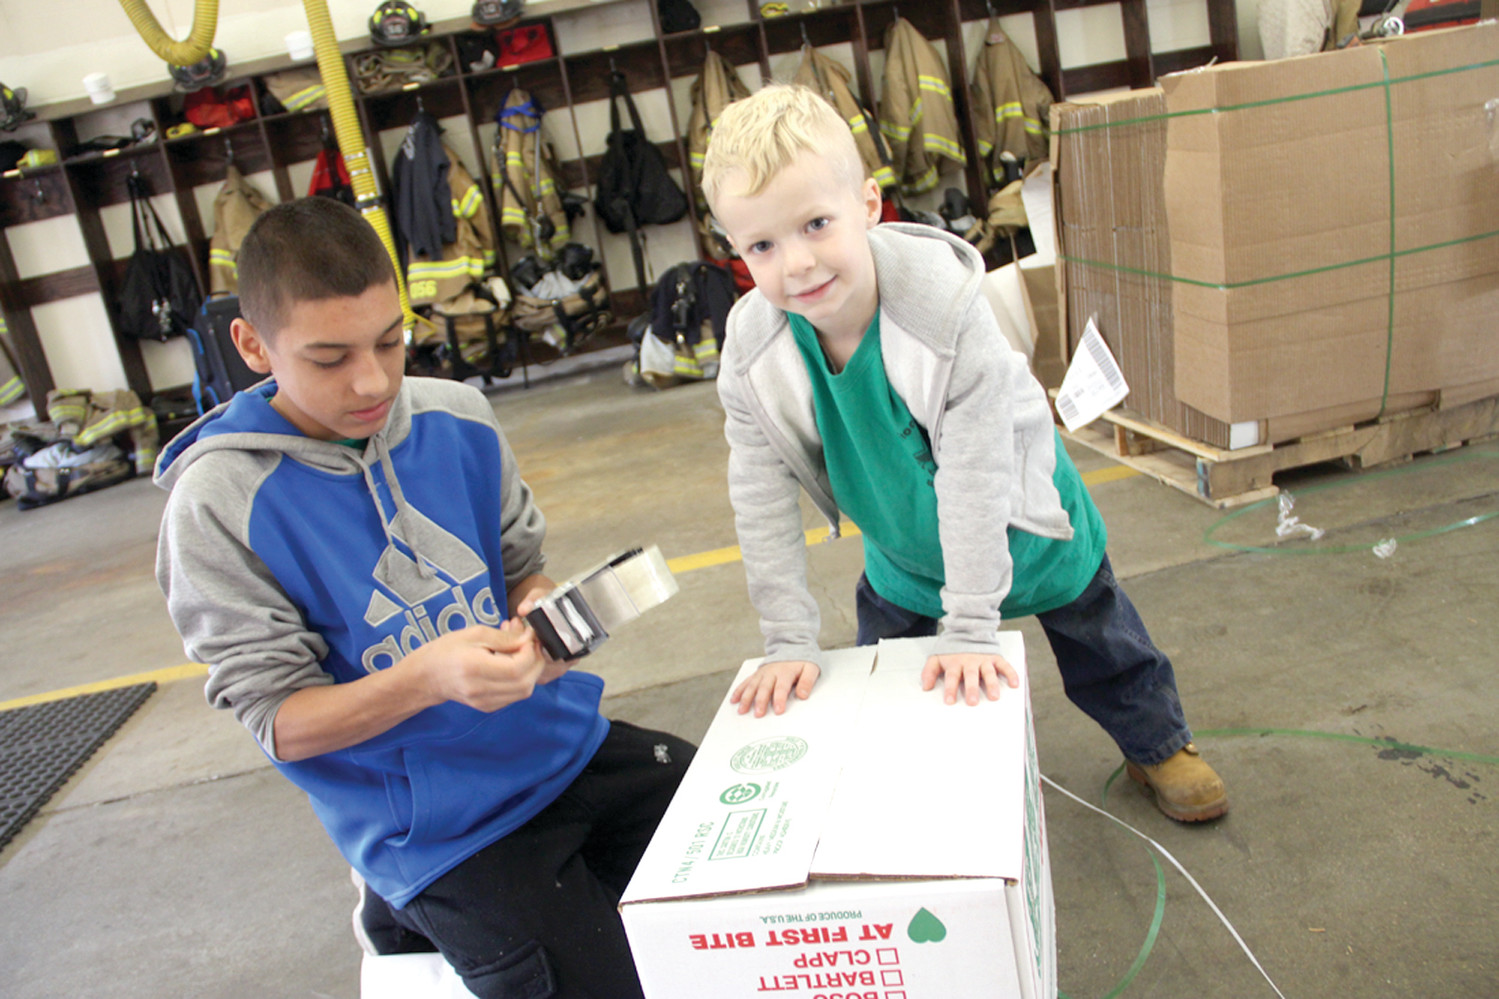 THE BOX CREW: Marcus Pascual and Julius Saint Butler prepare boxes for the food collection last Saturday at the fire station at the intersection of Sandy Lane and West Shore Road.